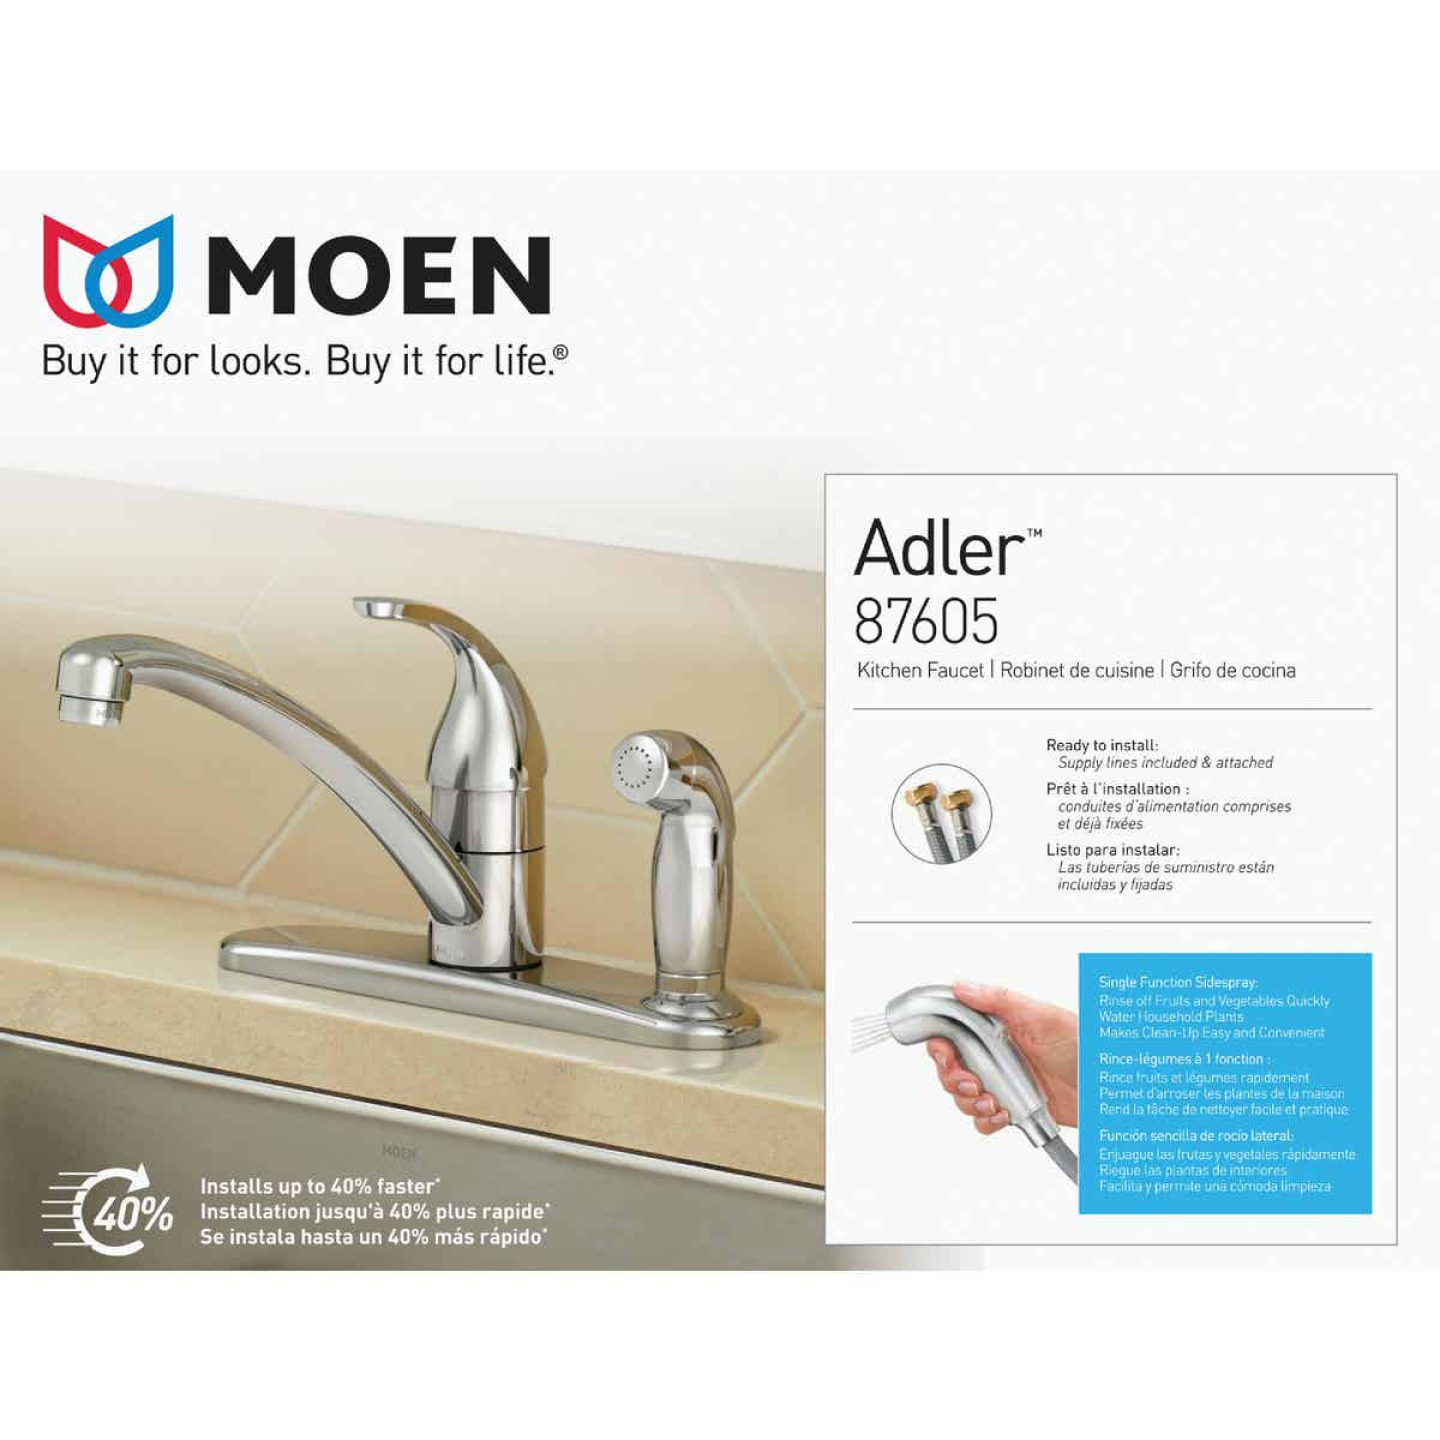 Moen Adler Single Handle Lever Kitchen Faucet with Deck Plate Spray, Chrome Image 1